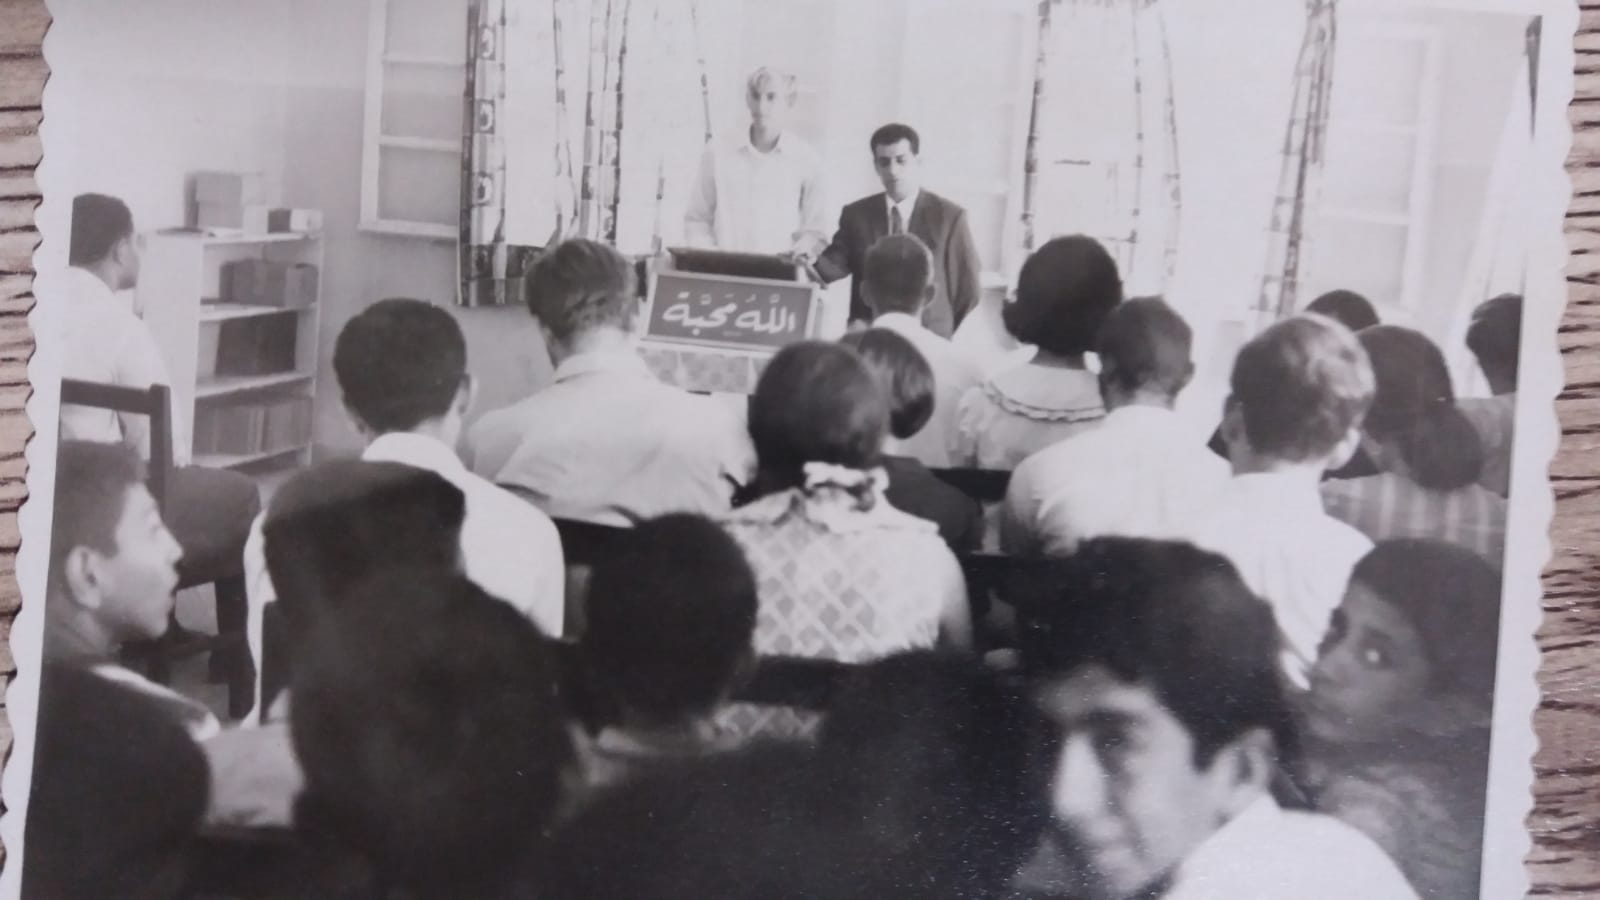 Sunday School at the church in Cana in the early days